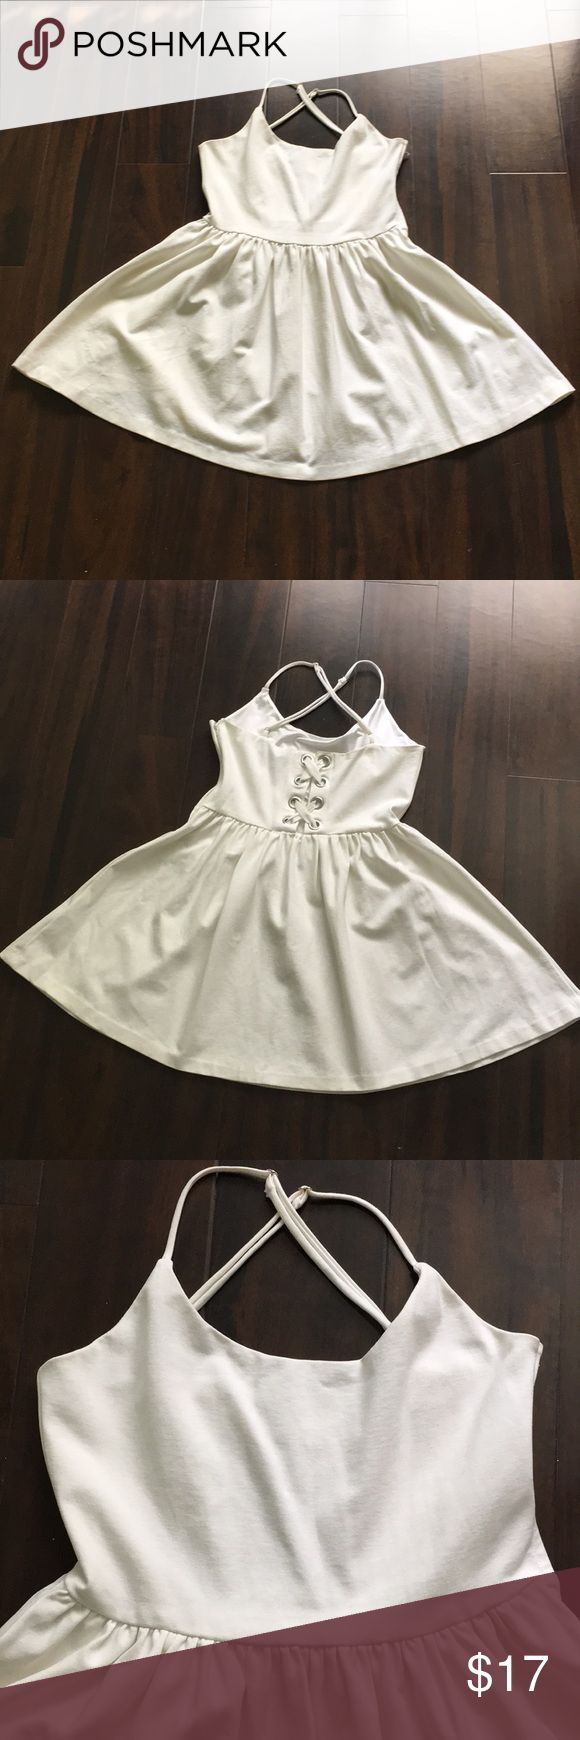 """Guess❓ Dress Women's guess dress. Great condition. Thick material for good coverage. 16"""" from waist to hem. Color is off white Guess Dresses Mini"""